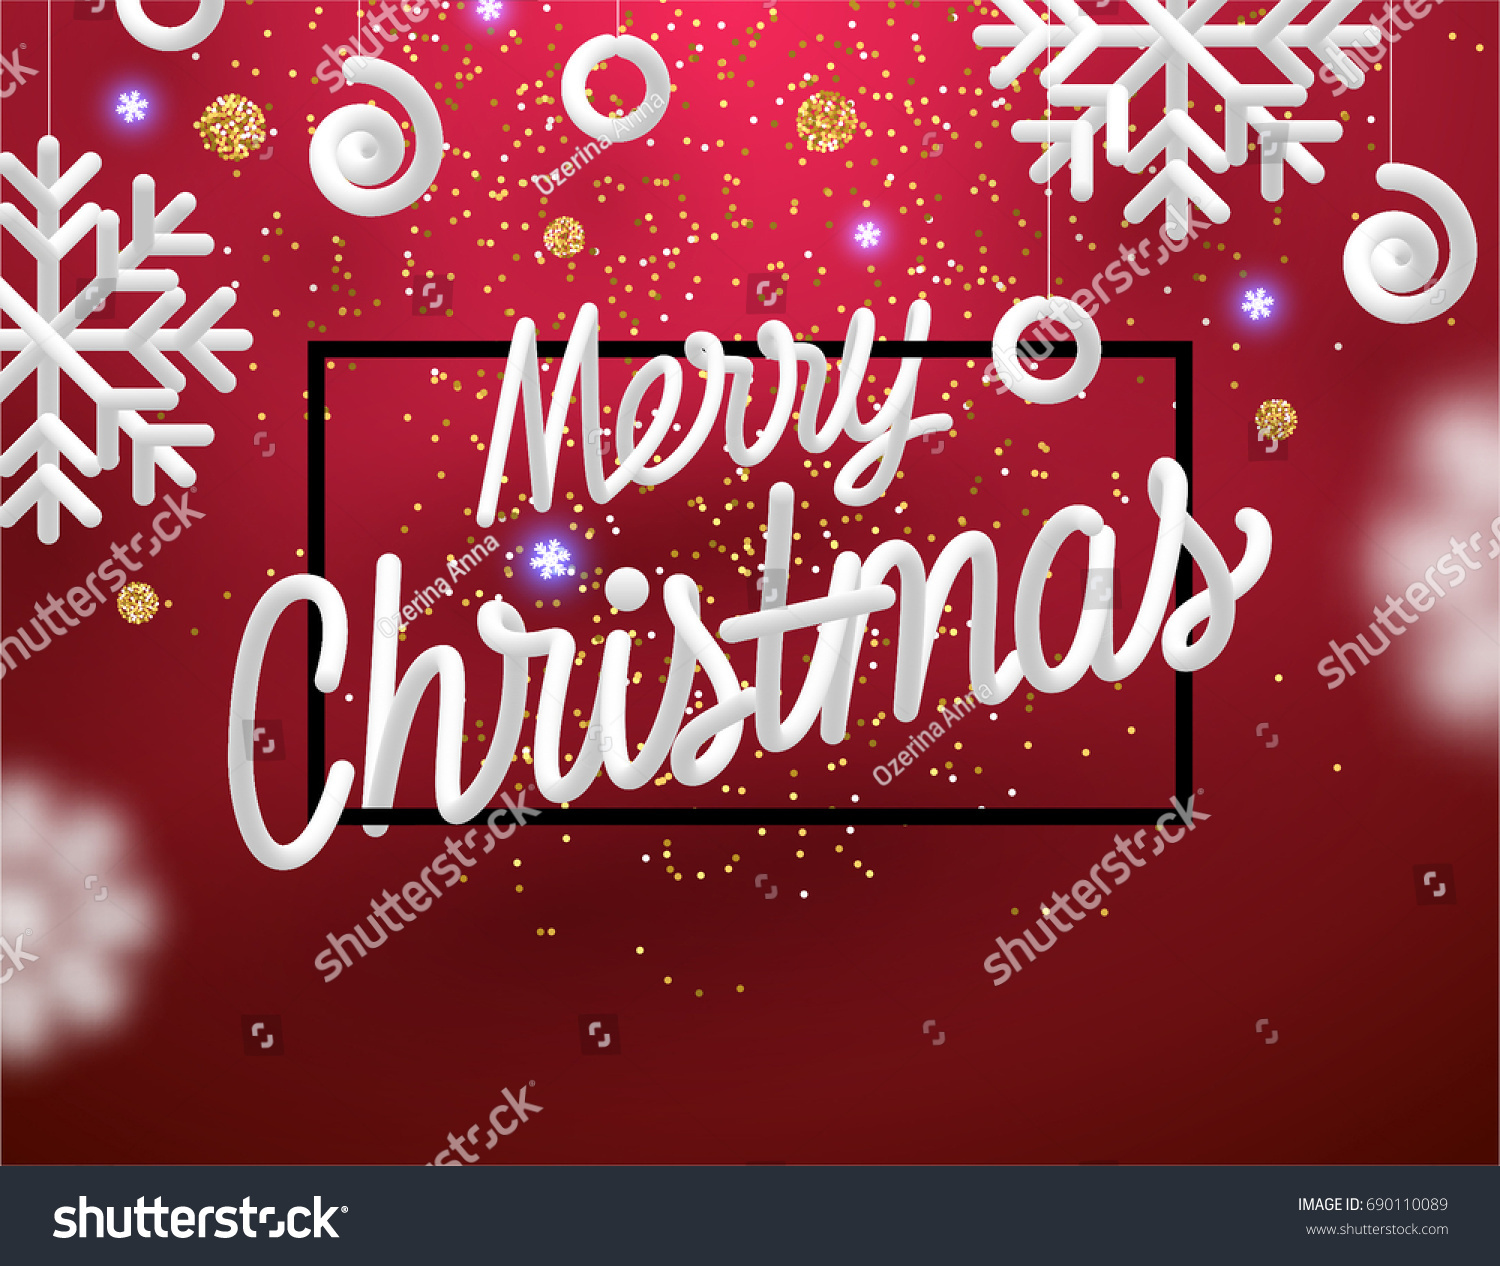 Merry Christmas Greeting Card Holiday Design Stock Vector Royalty